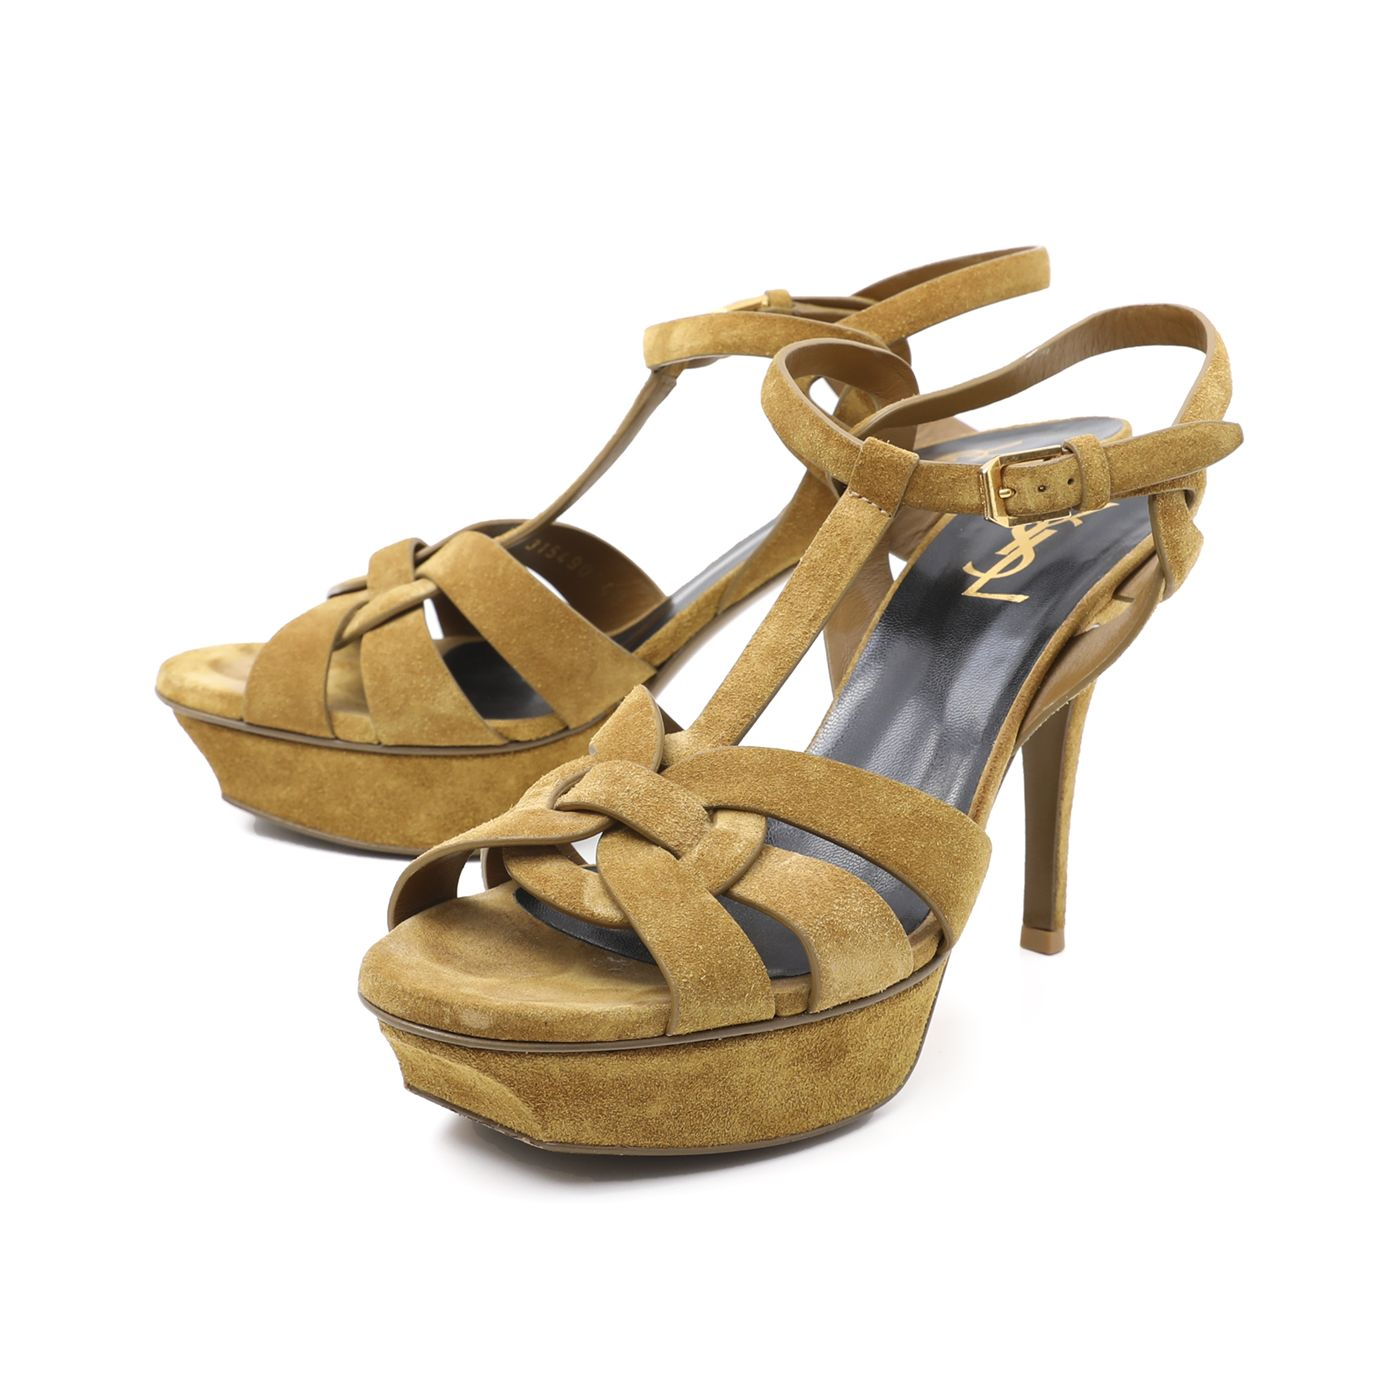 YSL Tan Suede Tribute Sandals 40